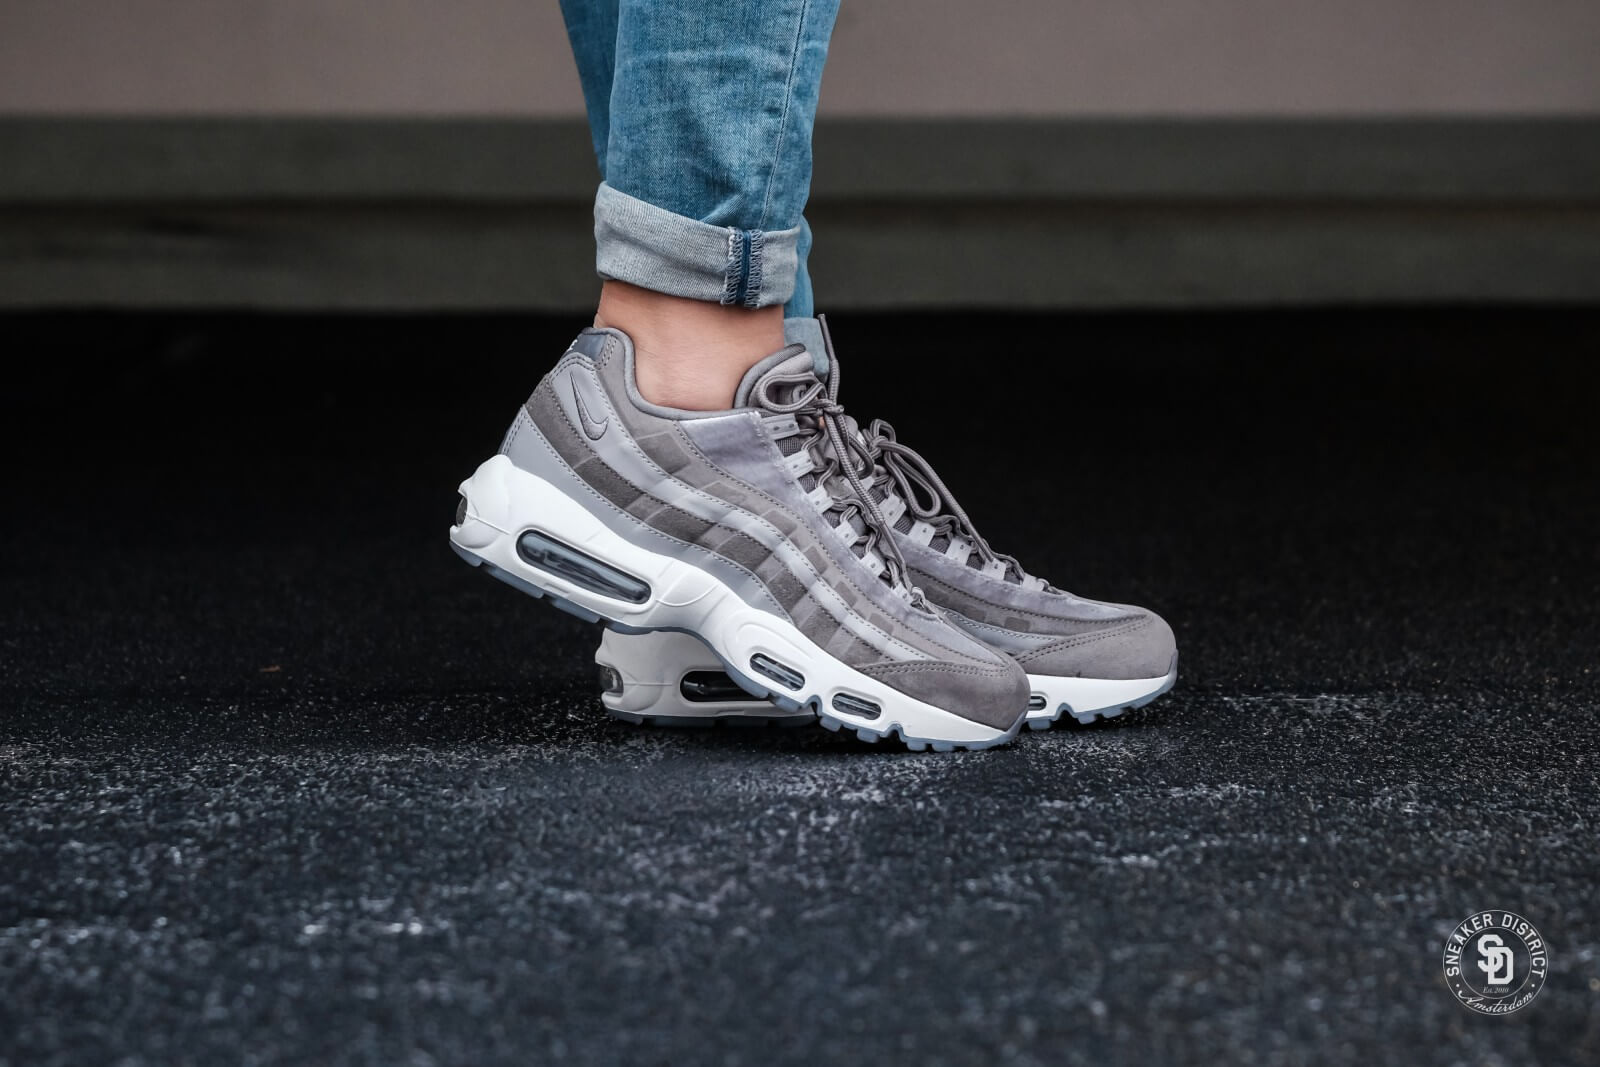 b2926cf9dda8 Günstiges Online-Shopping Nike Air Max 95 gunsmoke atmosphere grey Nike In  Deutschland Günstigem